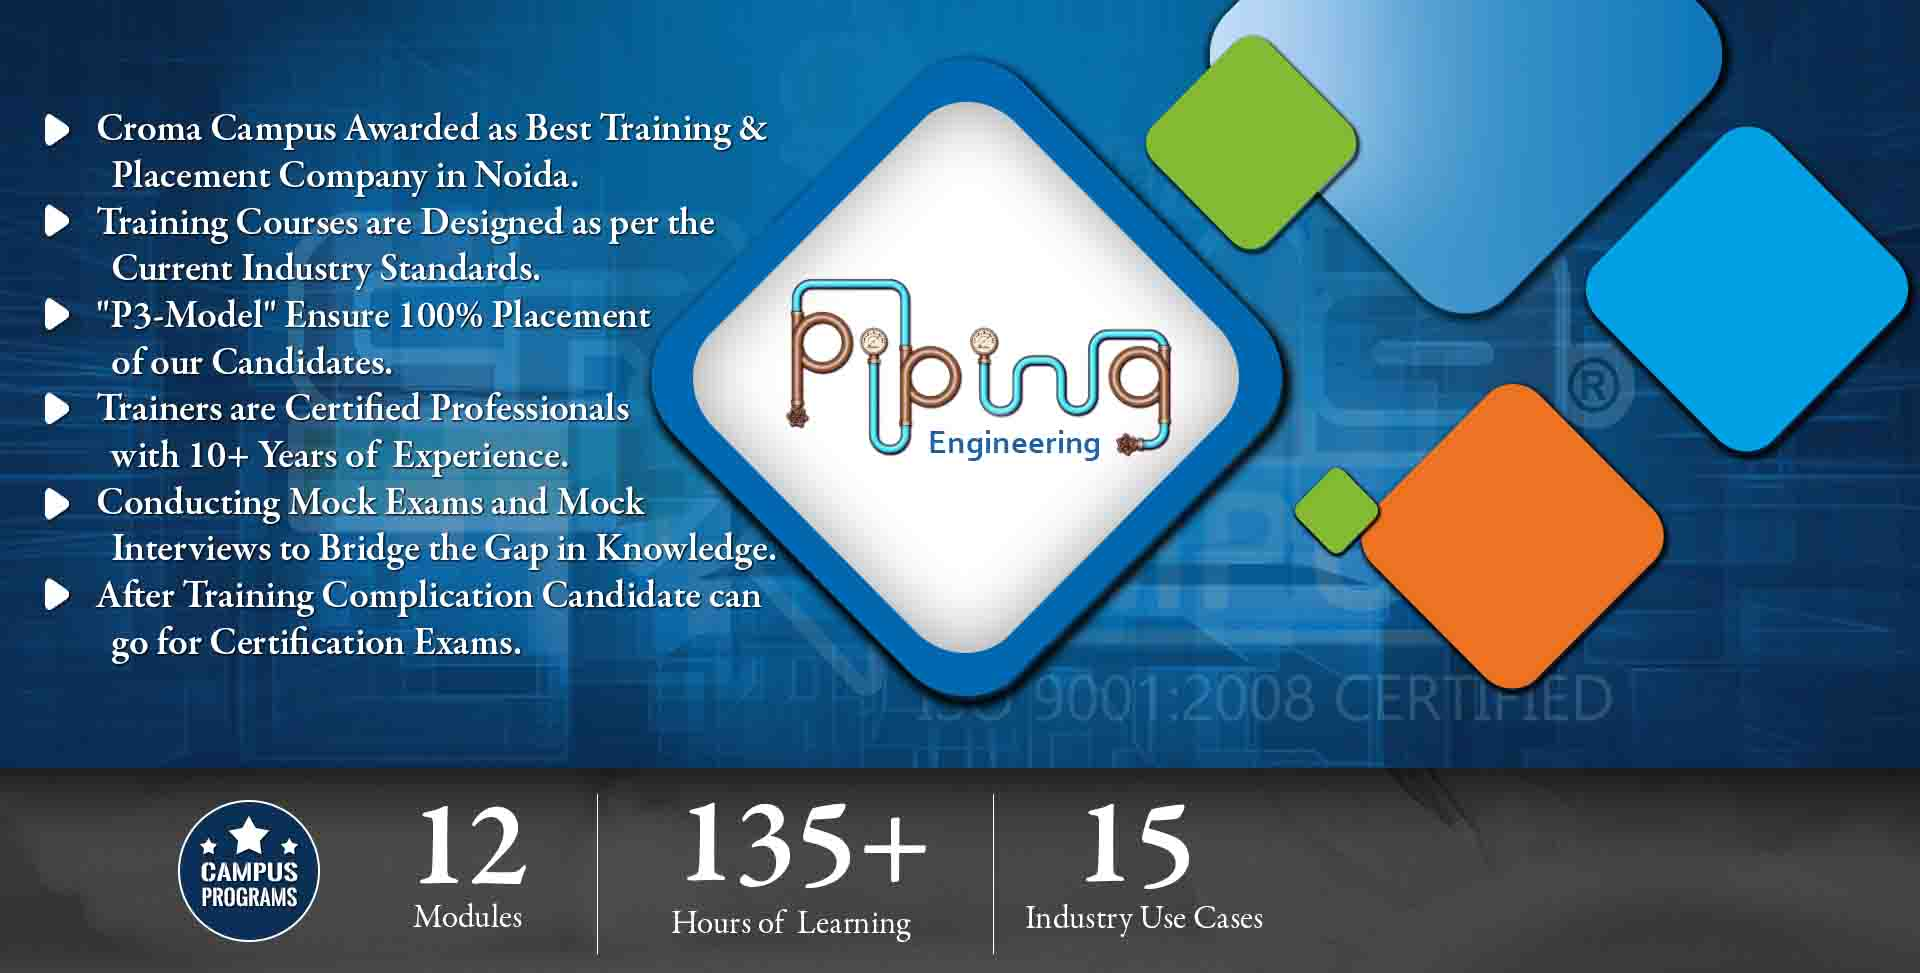 Piping Engineering Training in Delhi NCR- Croma Campus